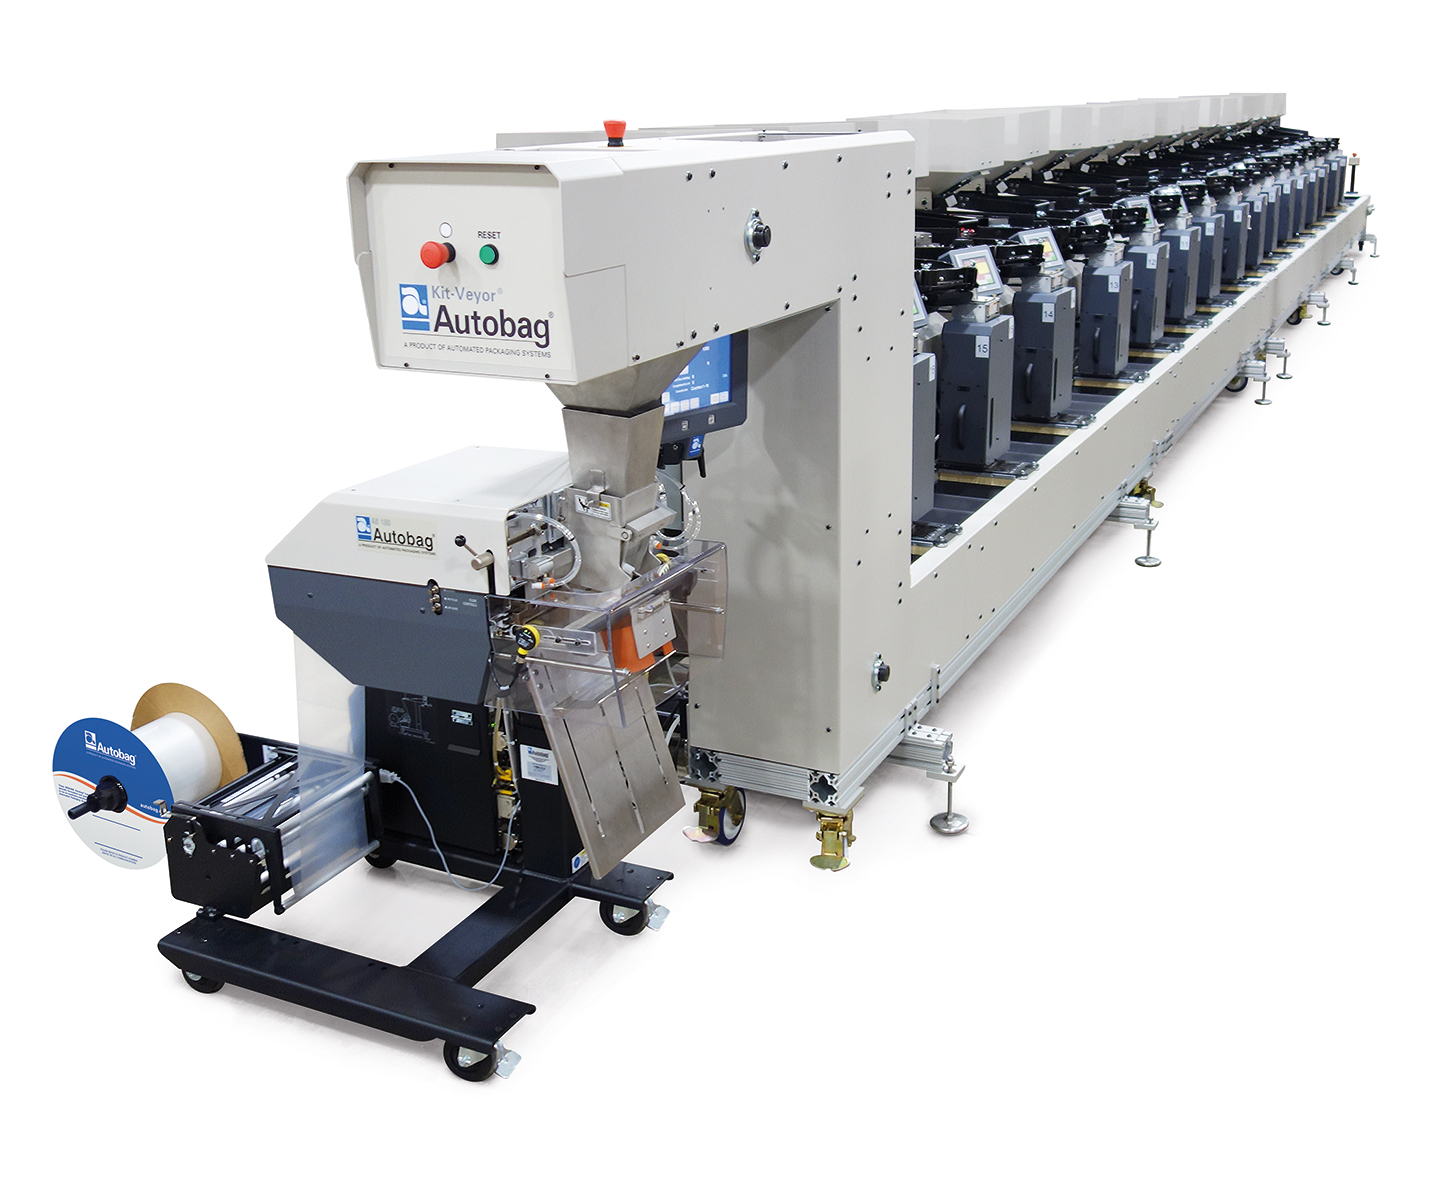 Autobag Kit-Veyor Packaging Conveyor System